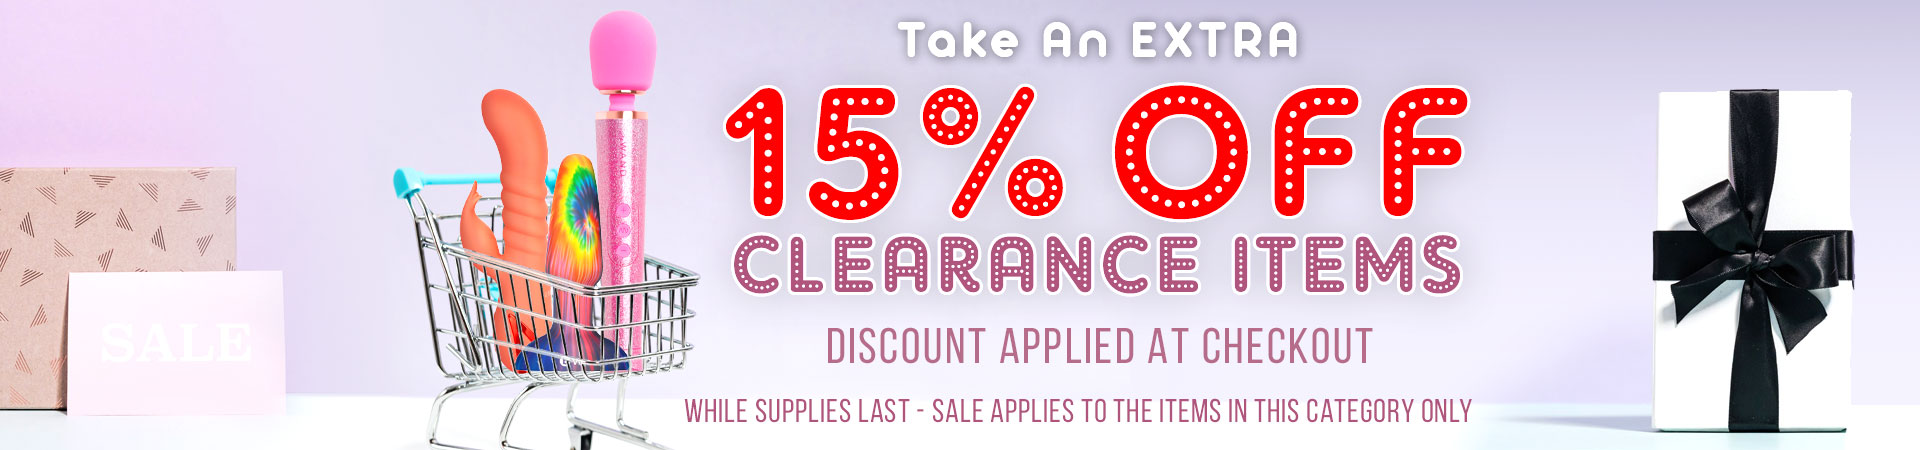 15% Off Clearance Items - Discount Applied At Checkout - While Supplies Last!